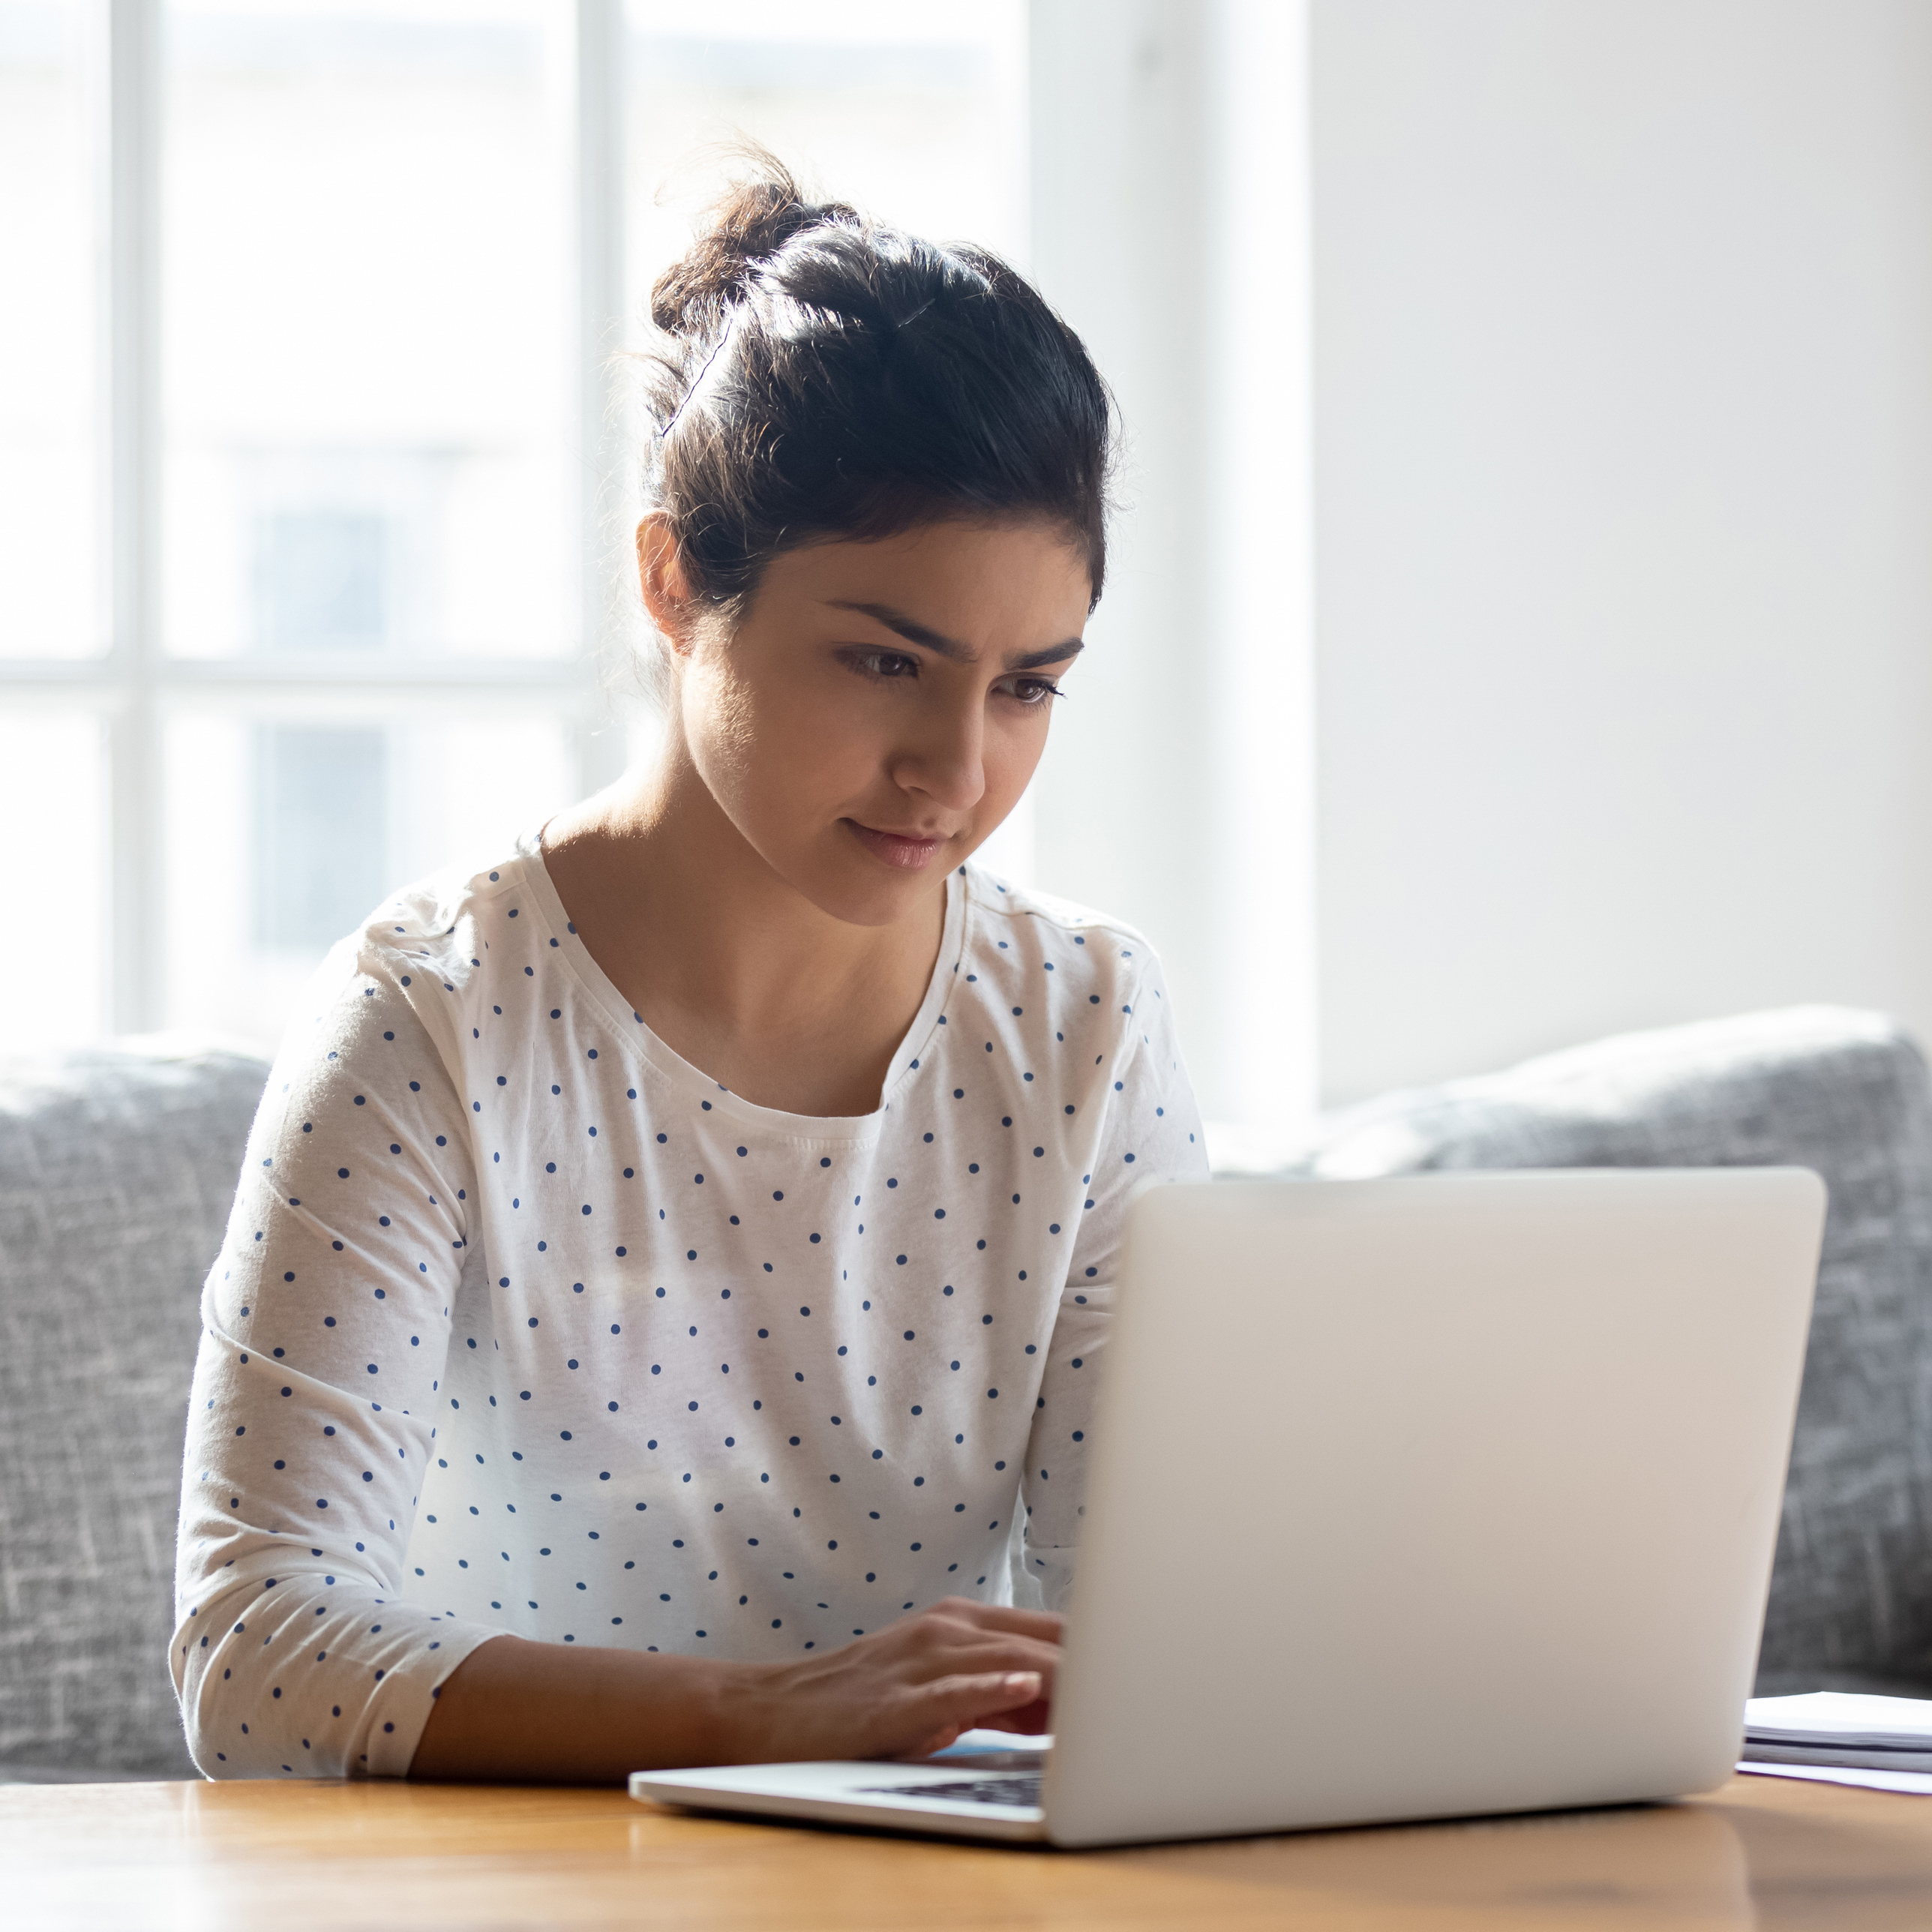 woman sitting at table looking at laptop